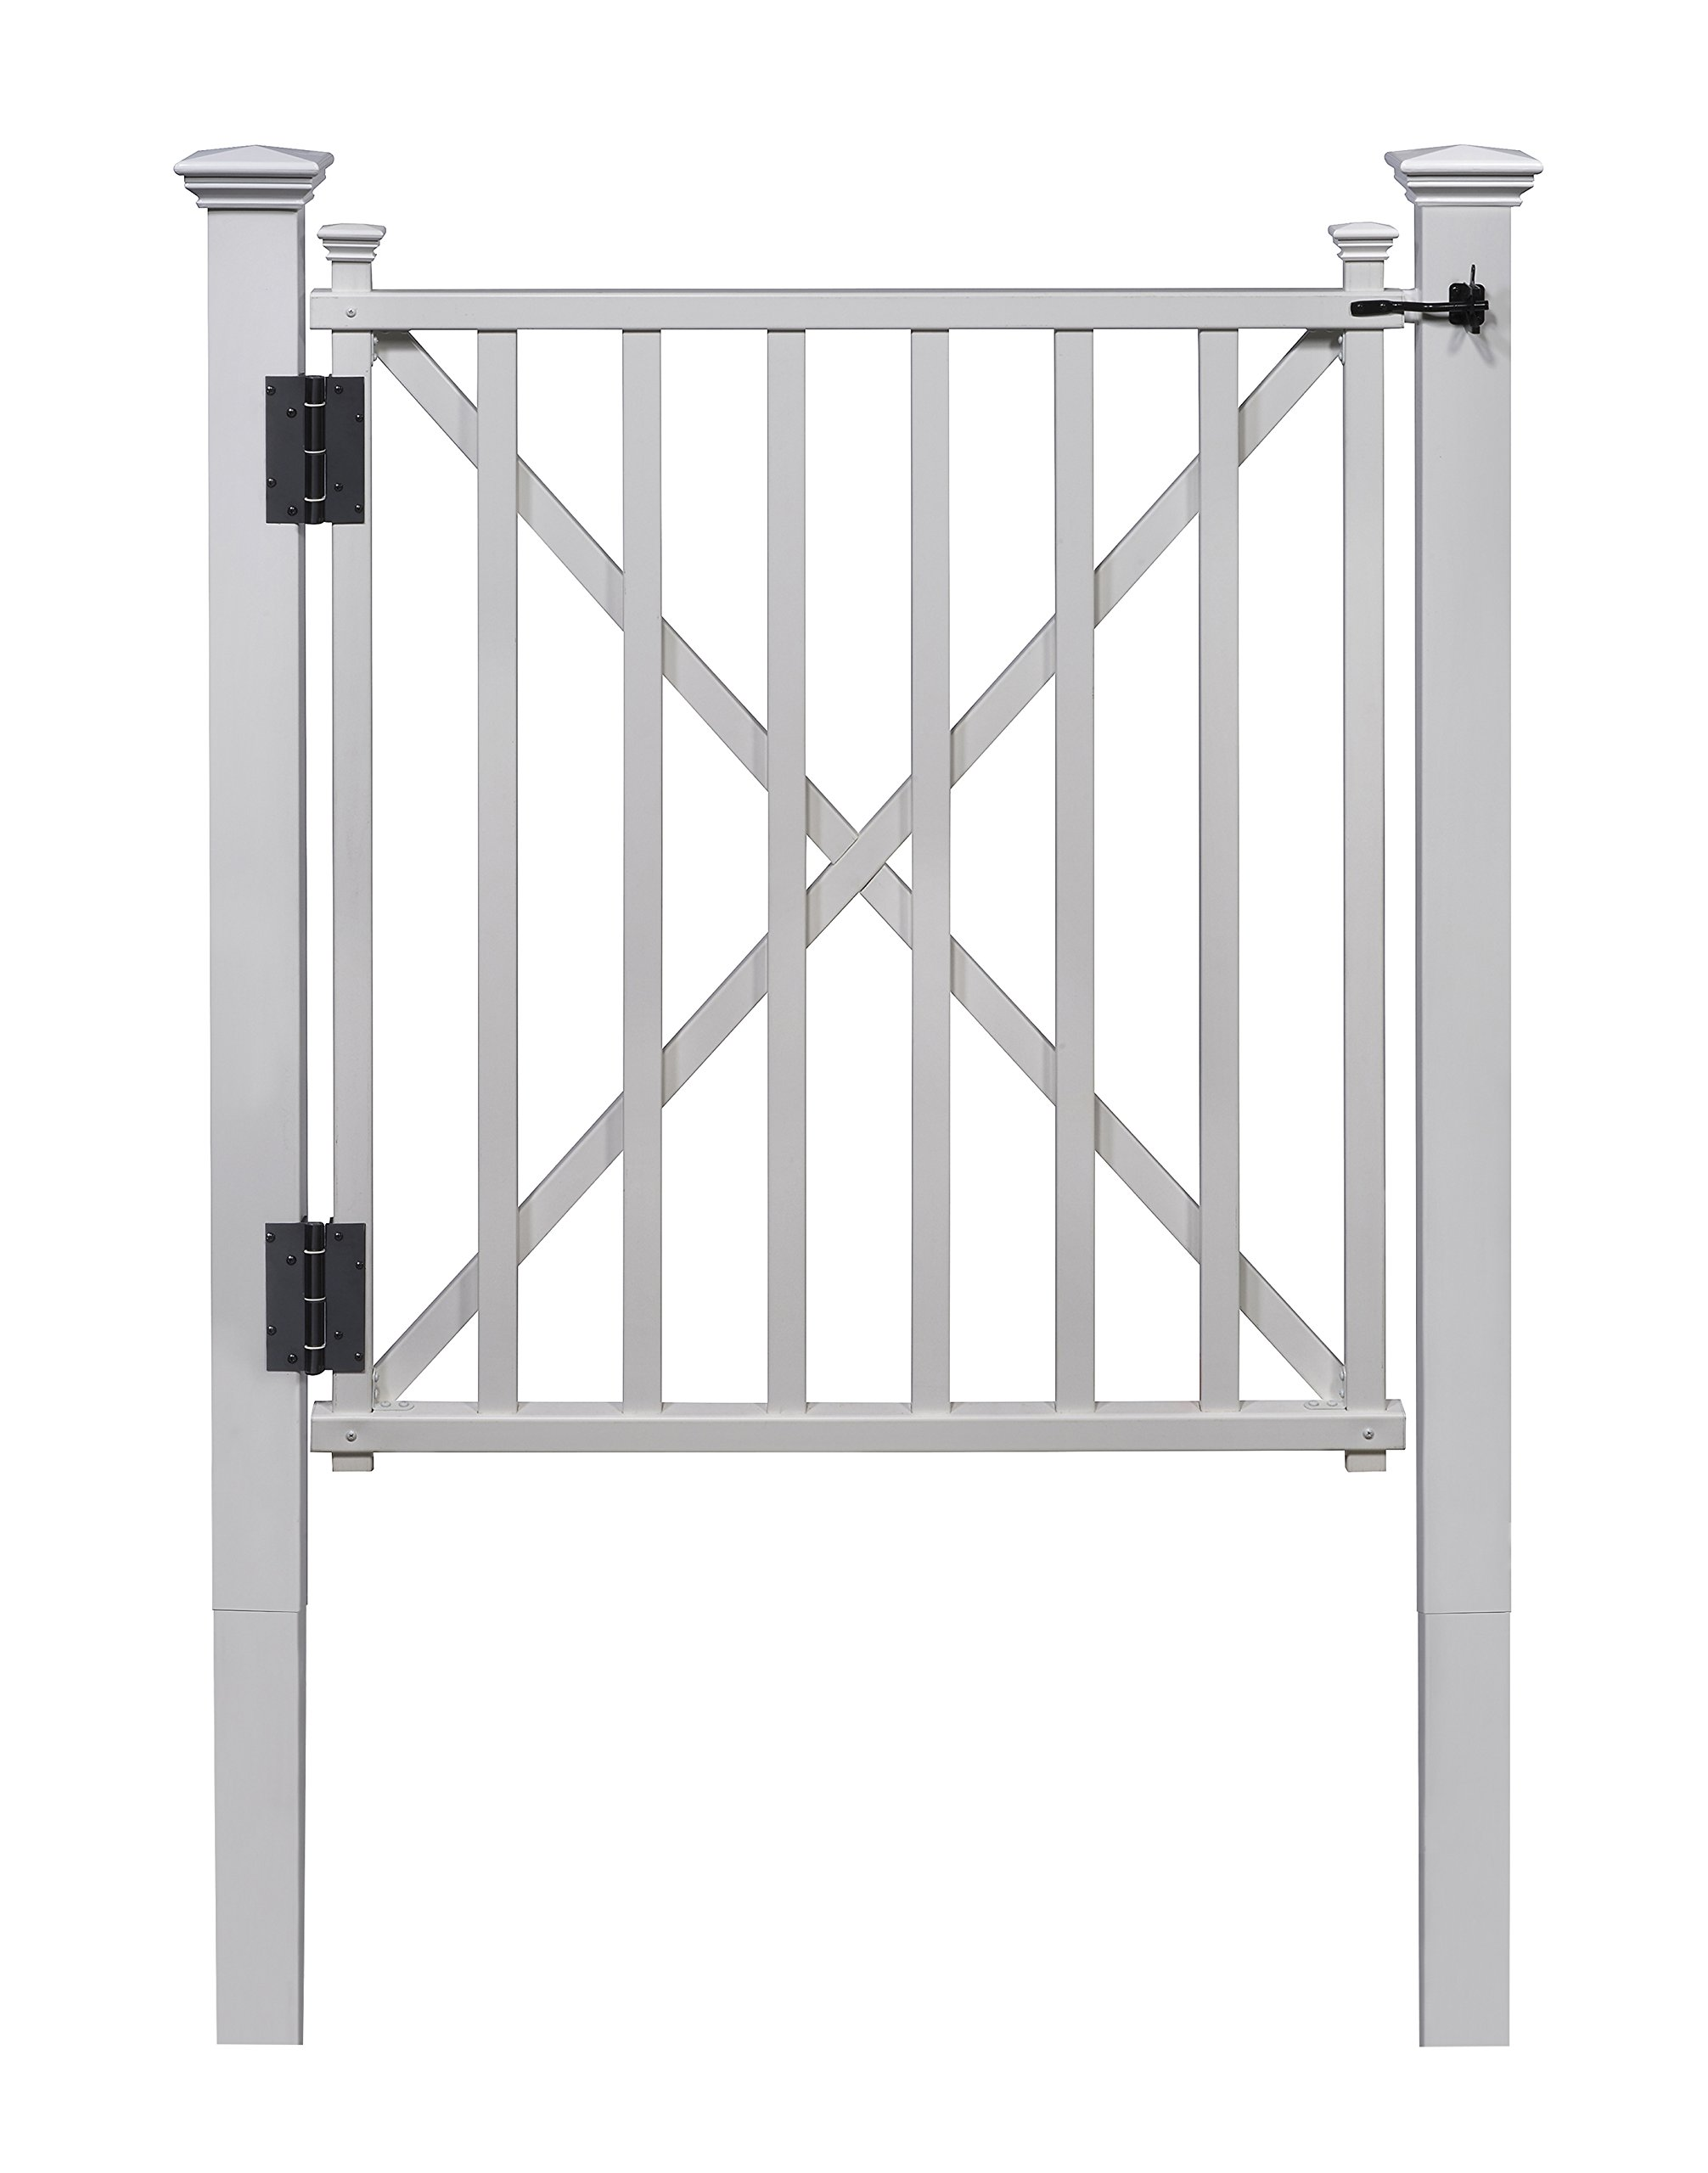 Zippity Outdoor Products ZP19021 Birkdale Vinyl Gate by Zippity Outdoor Products